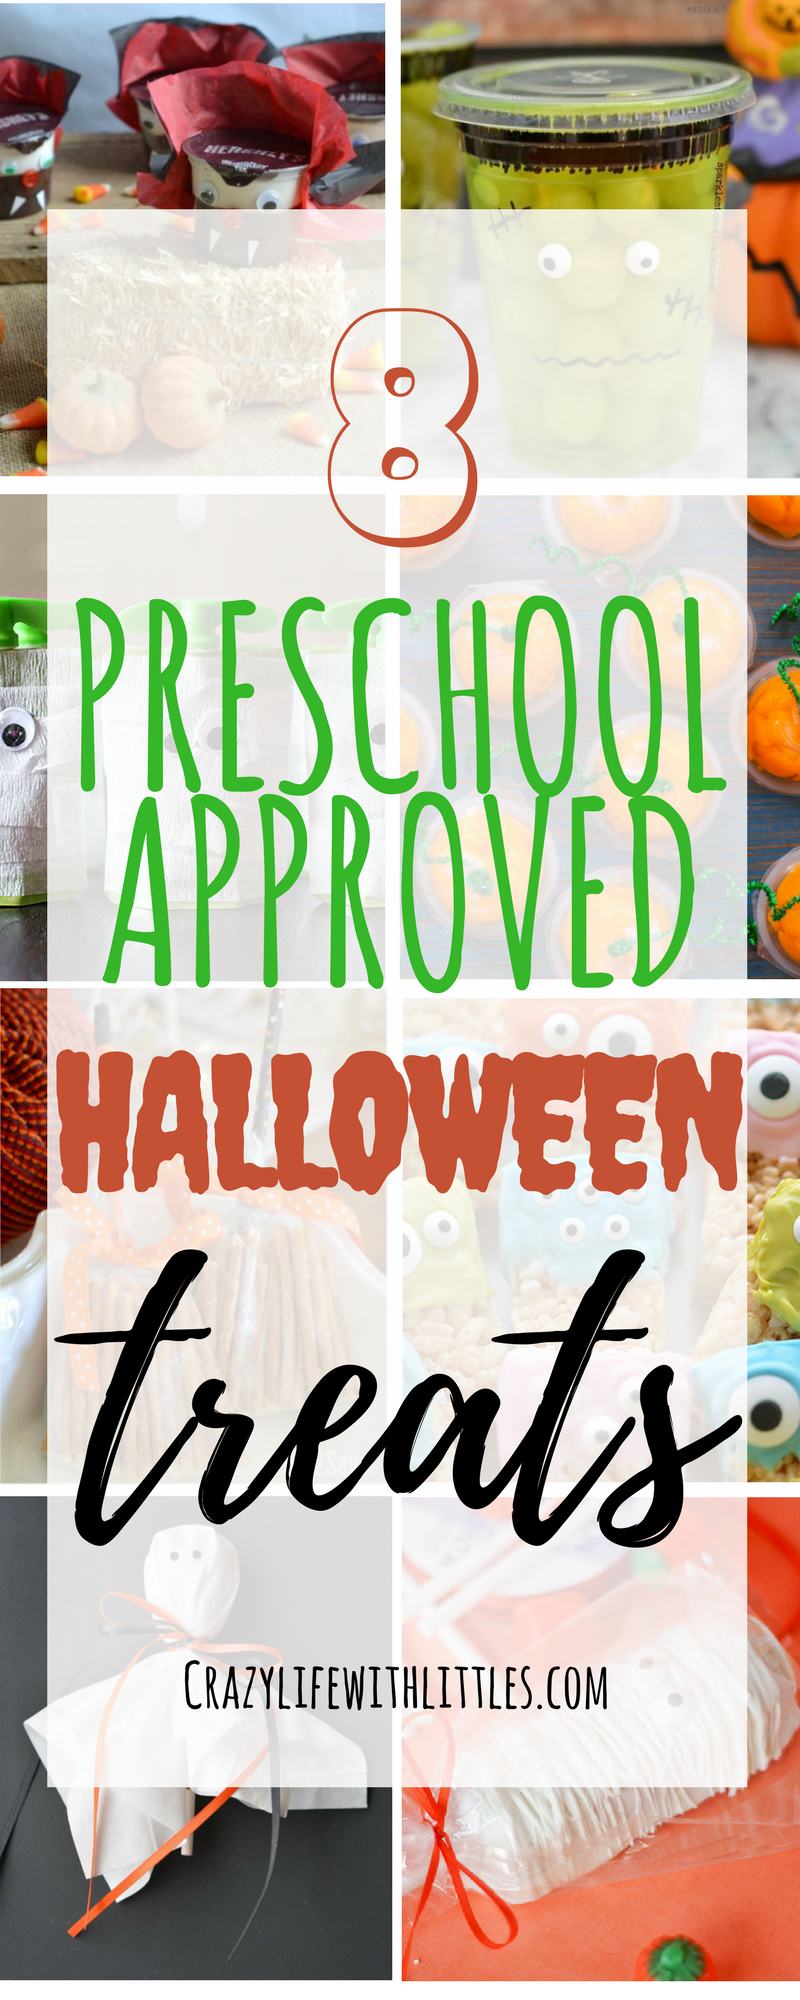 Halloween School Treat Ideas, halloween free printables, healthy halloween treats, halloween candy bags, fun halloween snacks for preschool kids